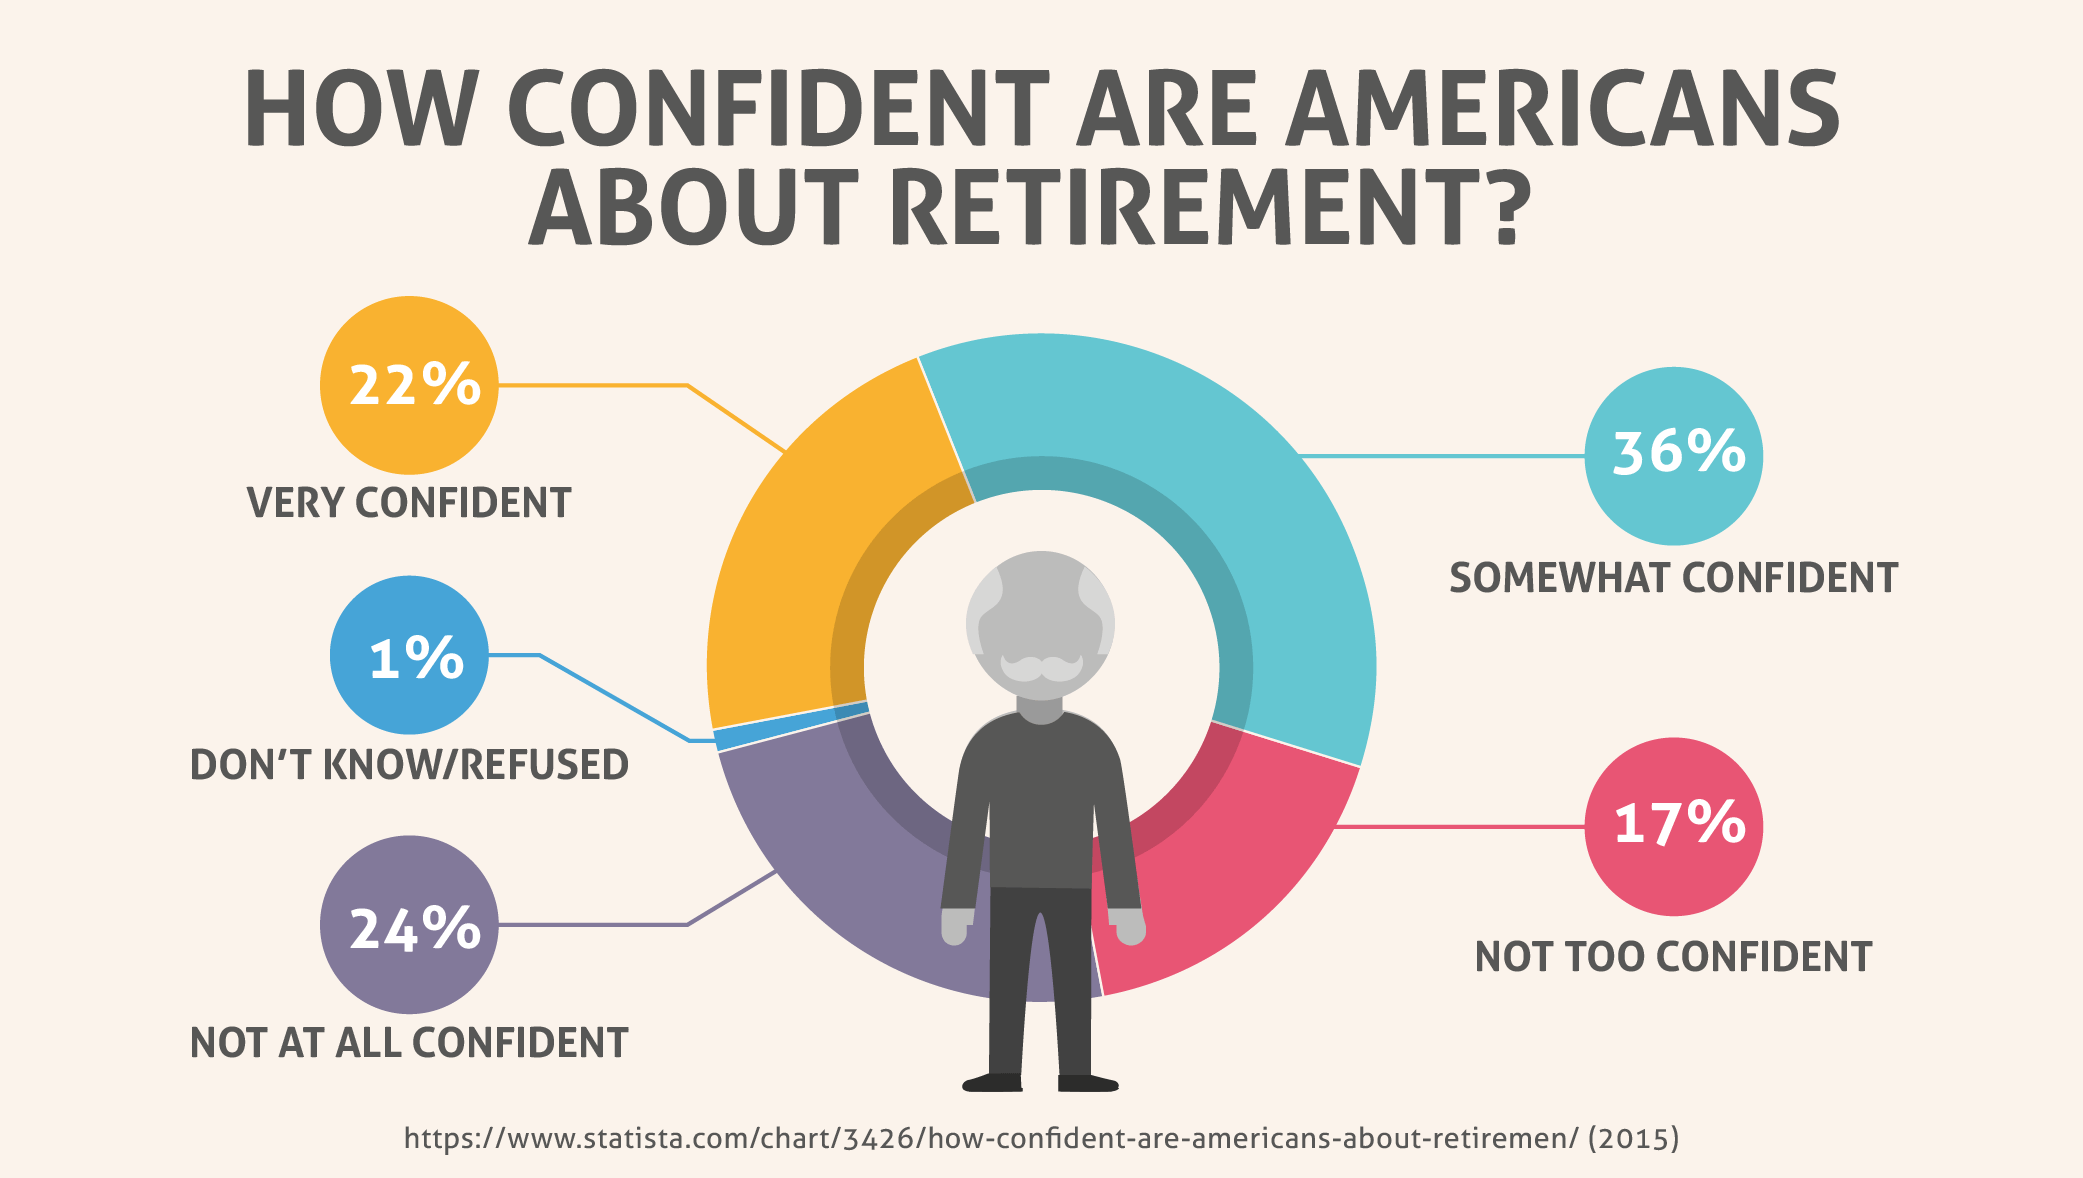 How Confident Are Americans About Retirement?